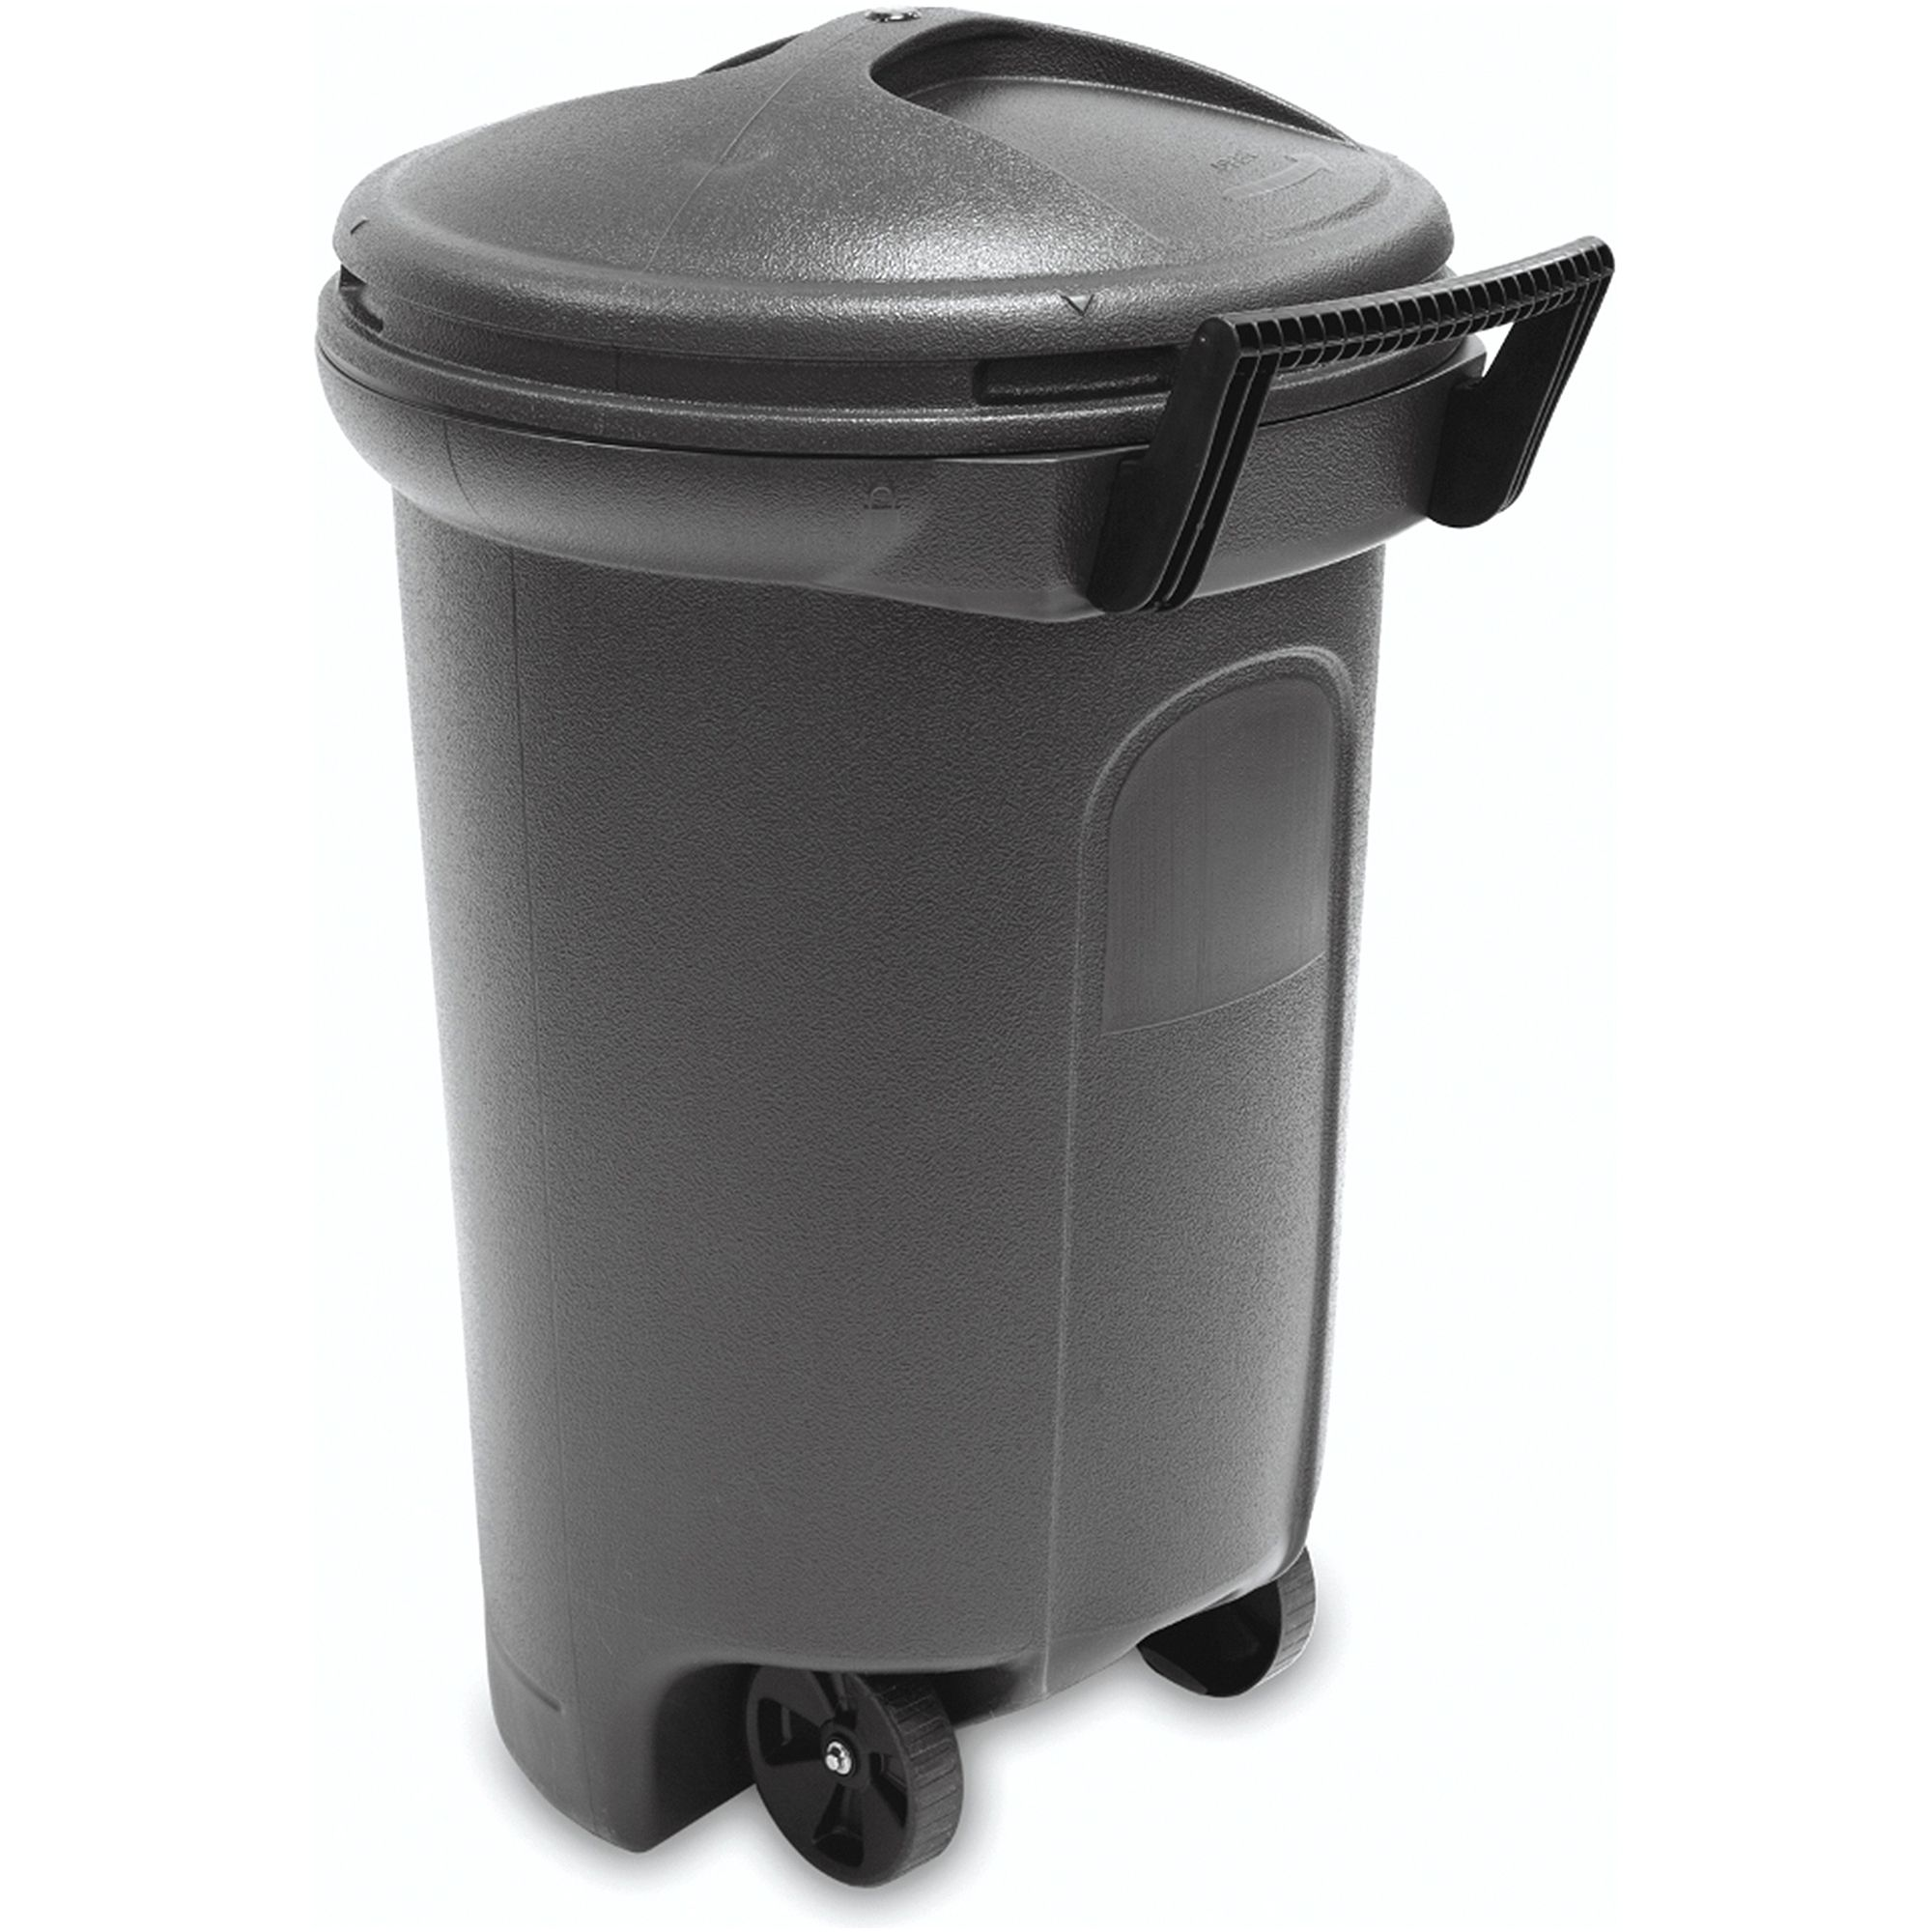 Walmart Outdoor Trash Cans Brilliant Outside Trash Cans With Wheels  Useful Itemsneeds  Pinterest  Wheels Design Decoration